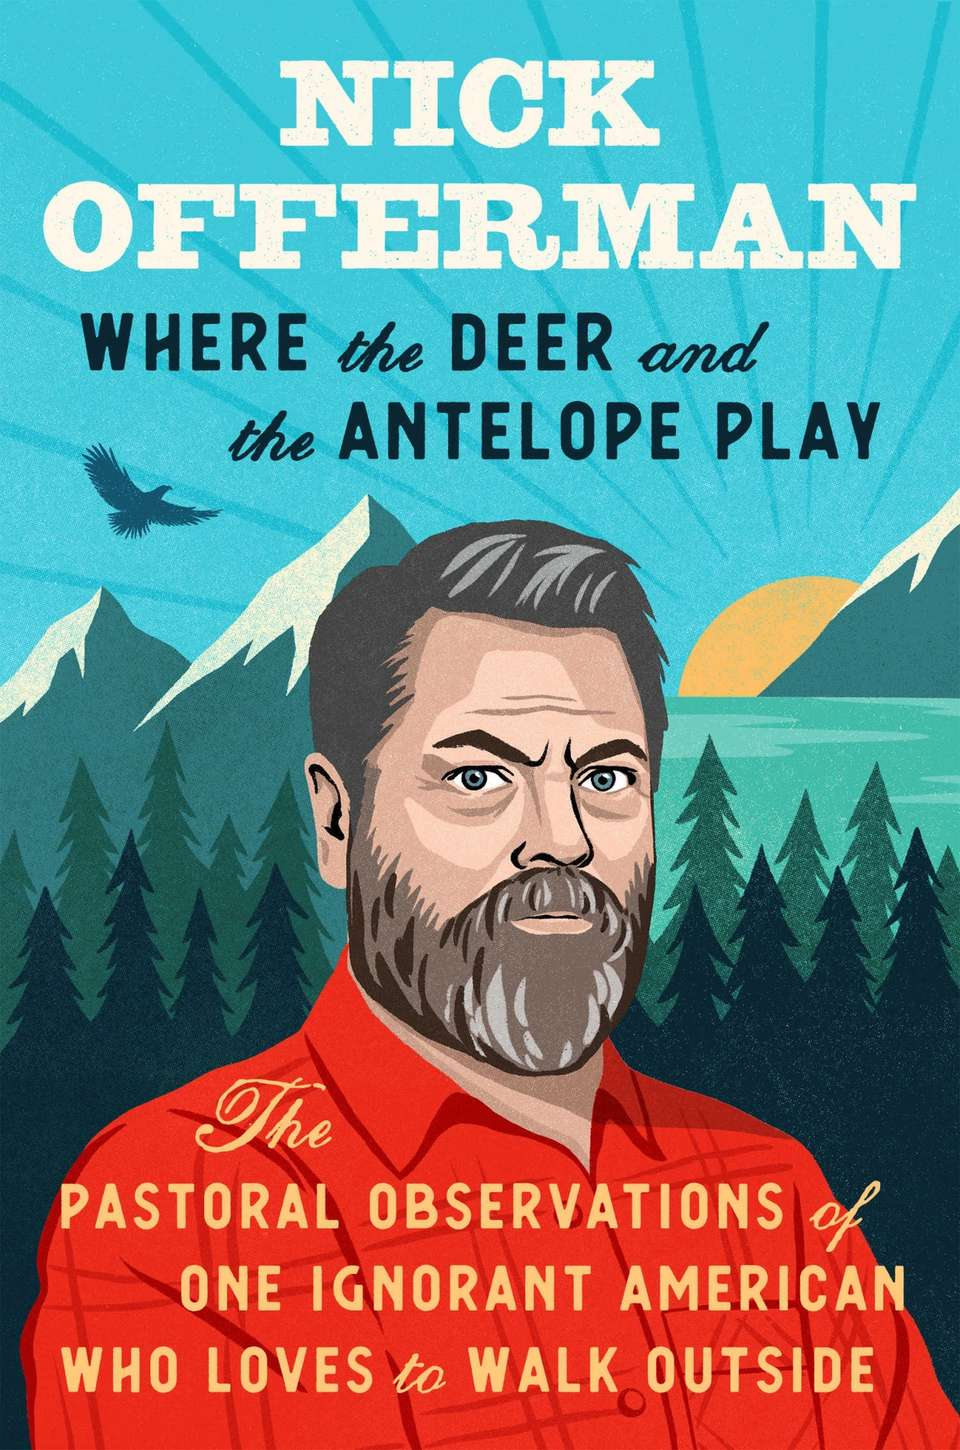 Book cover with illustration of Nick Offerman, in the great outdoors, wearing a red shirt.